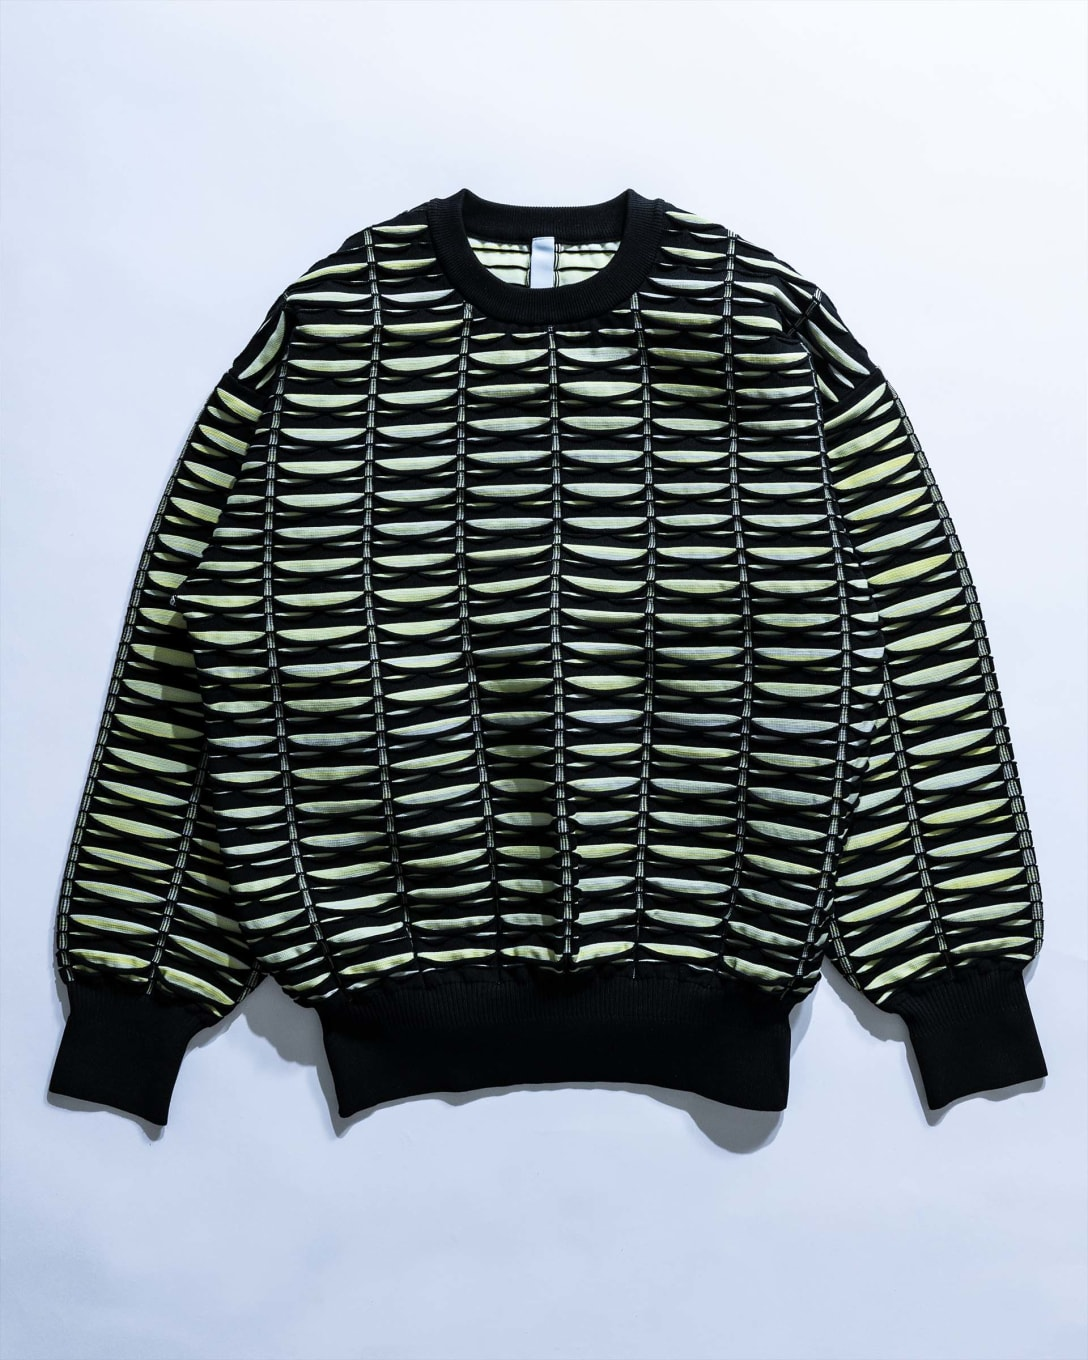 UPCYCLED FAÇADE TOP(税込4万2900円) Image by FASHIONSNAP